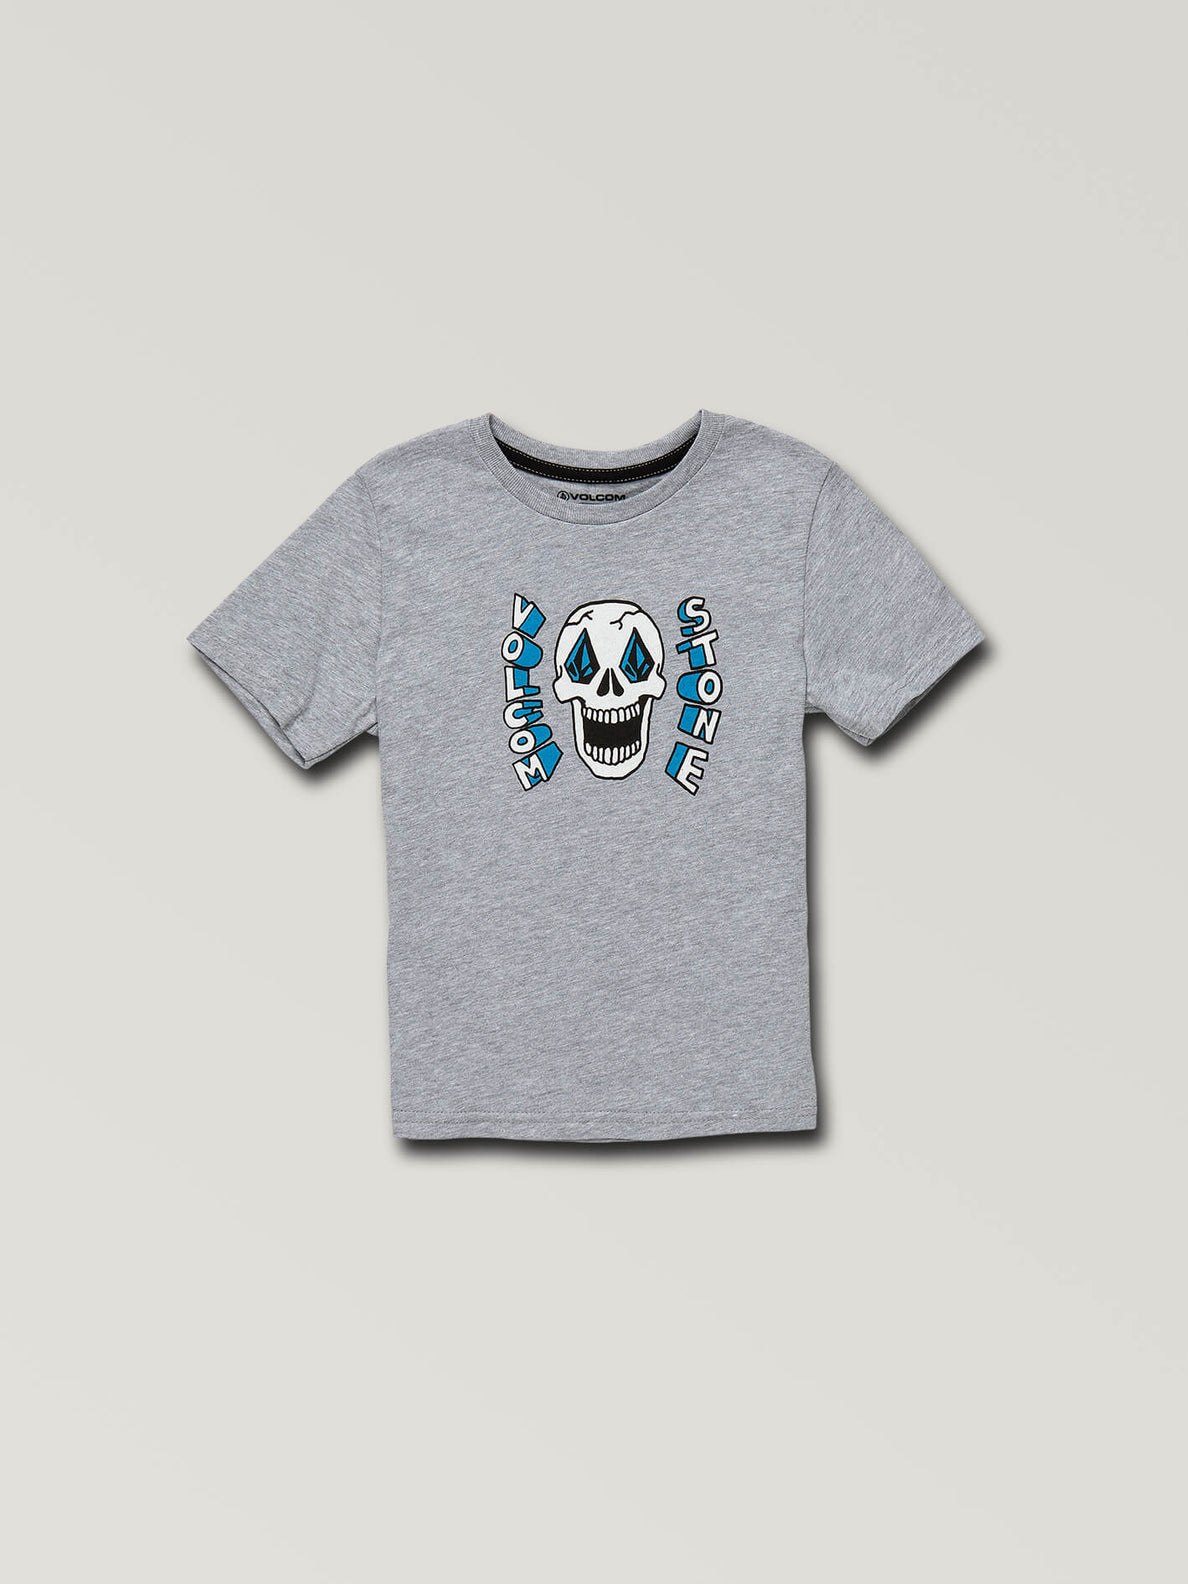 Little Boys Stone Eyes Short Sleeve Tee In Heather Grey, Front View